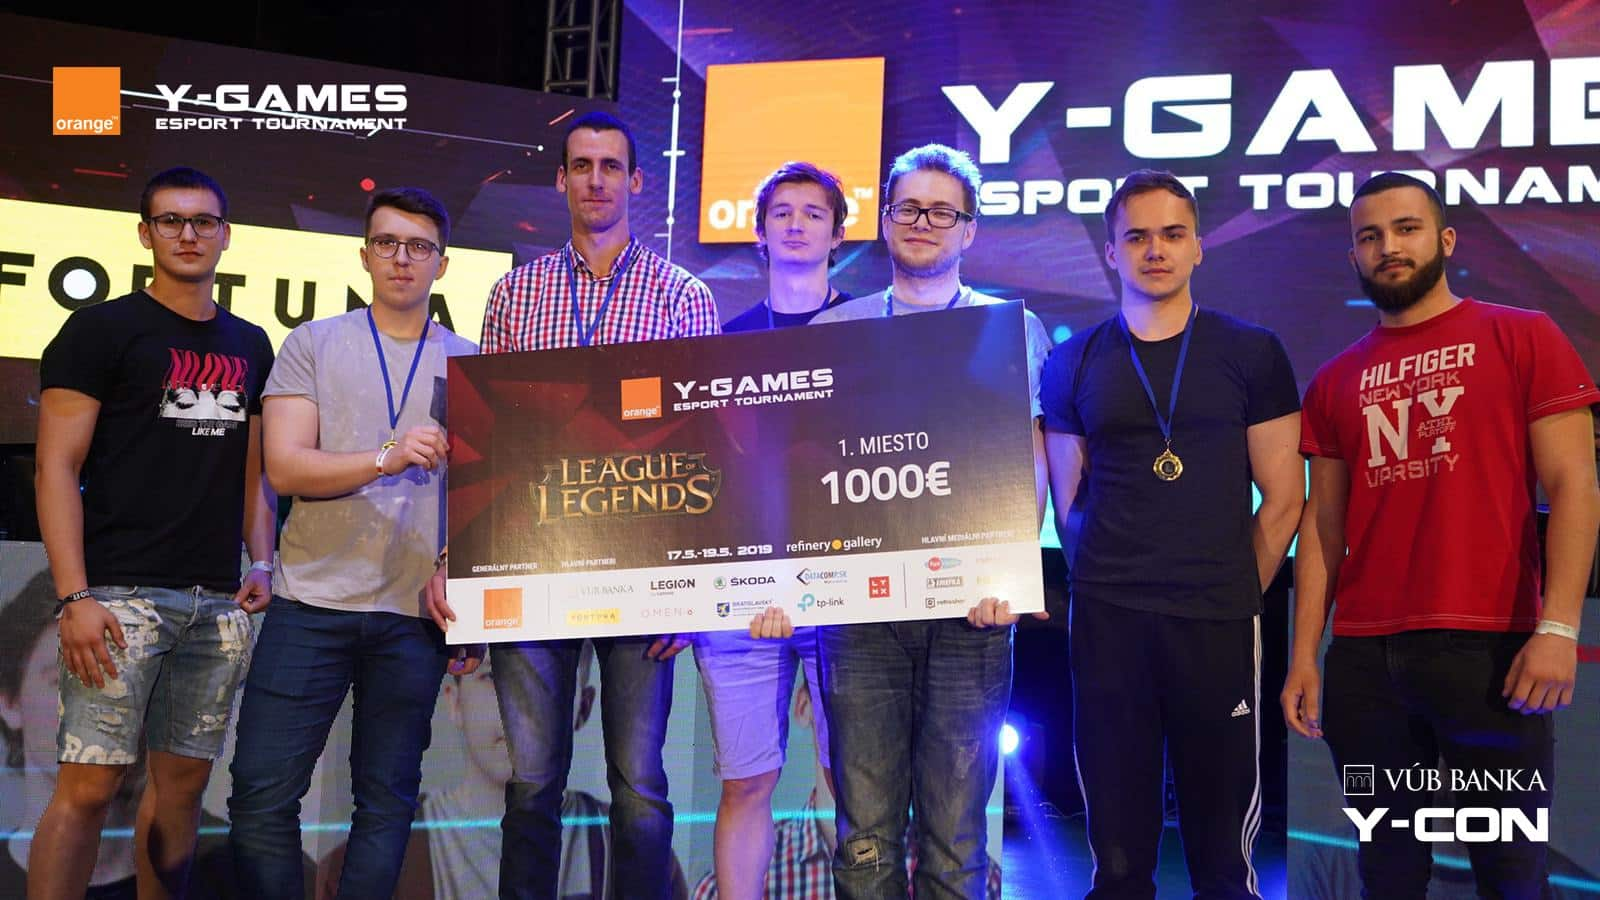 Orange Y-Games 2019 a VÚB Y-Con 2019